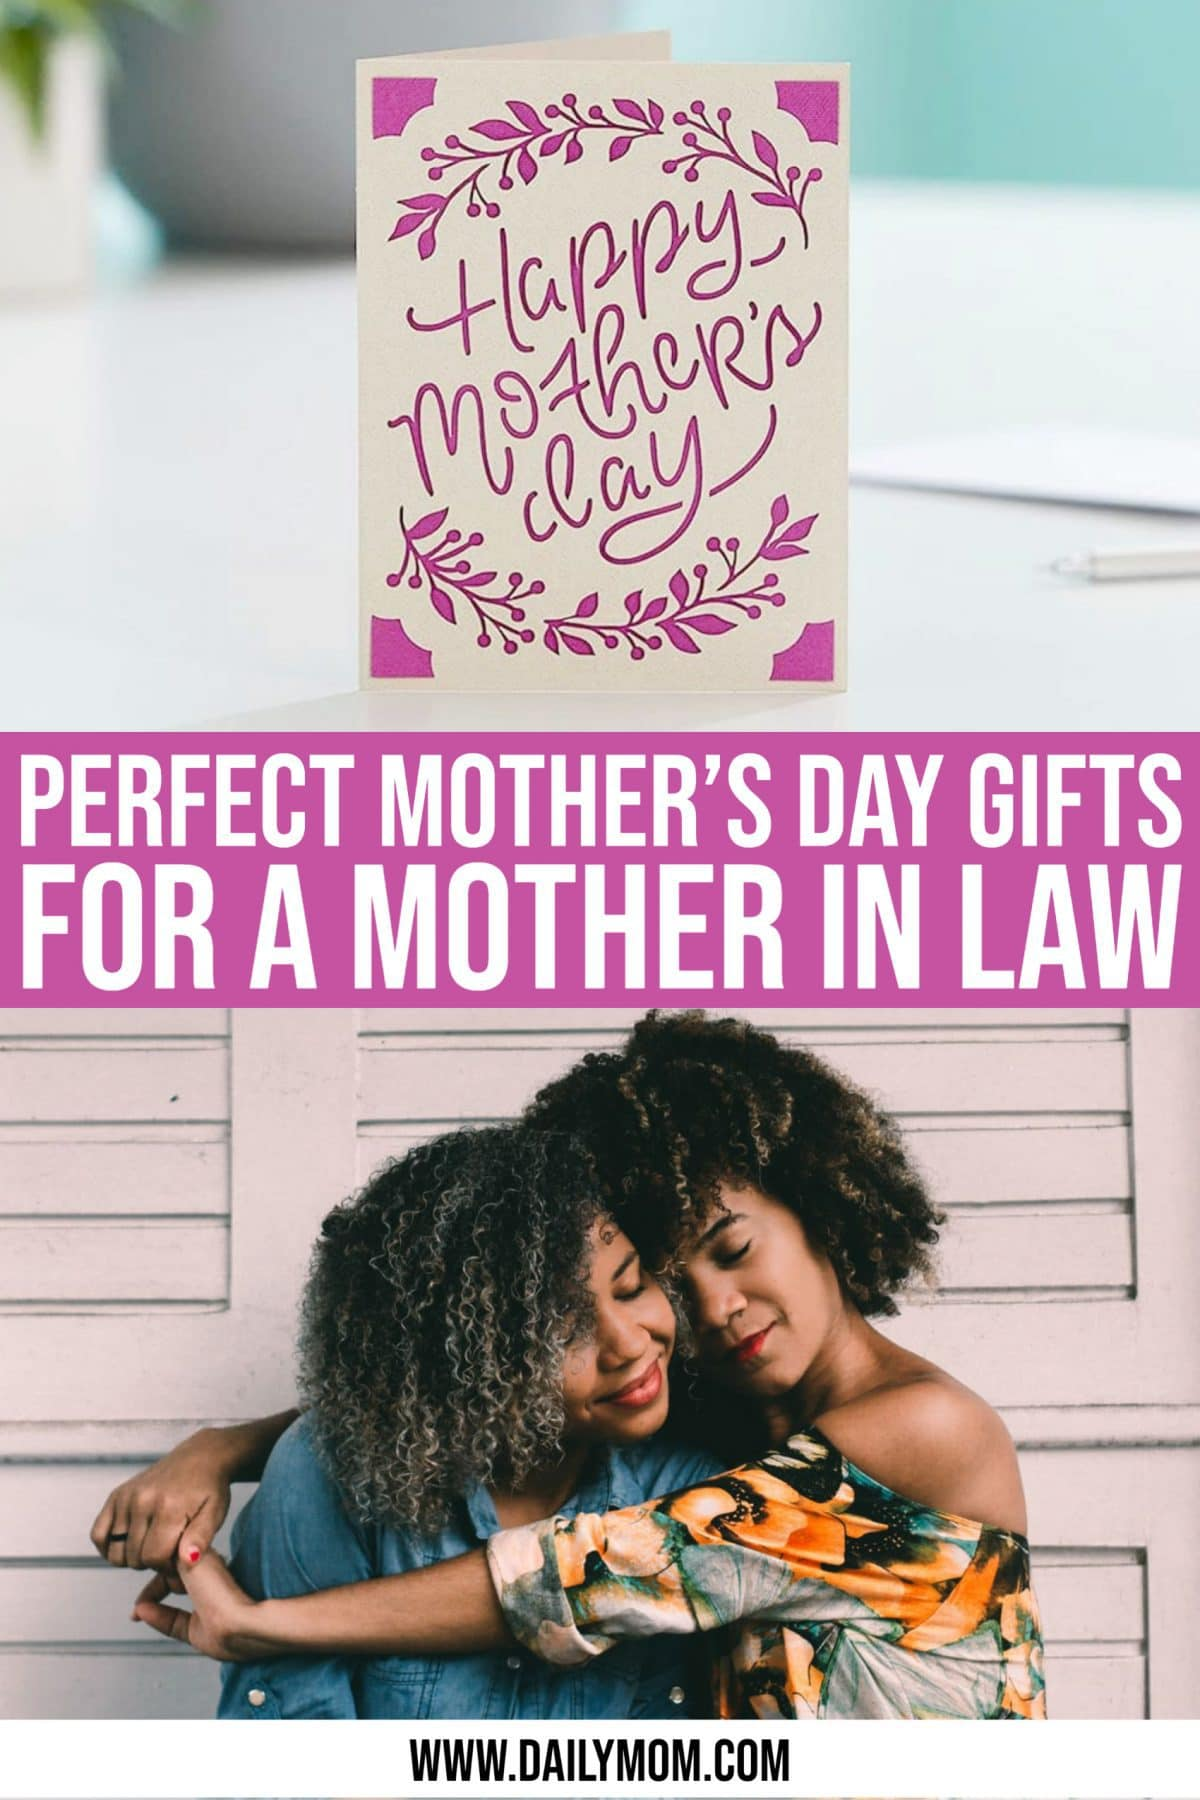 daily mom parent portal Gifts For A Mother In Law